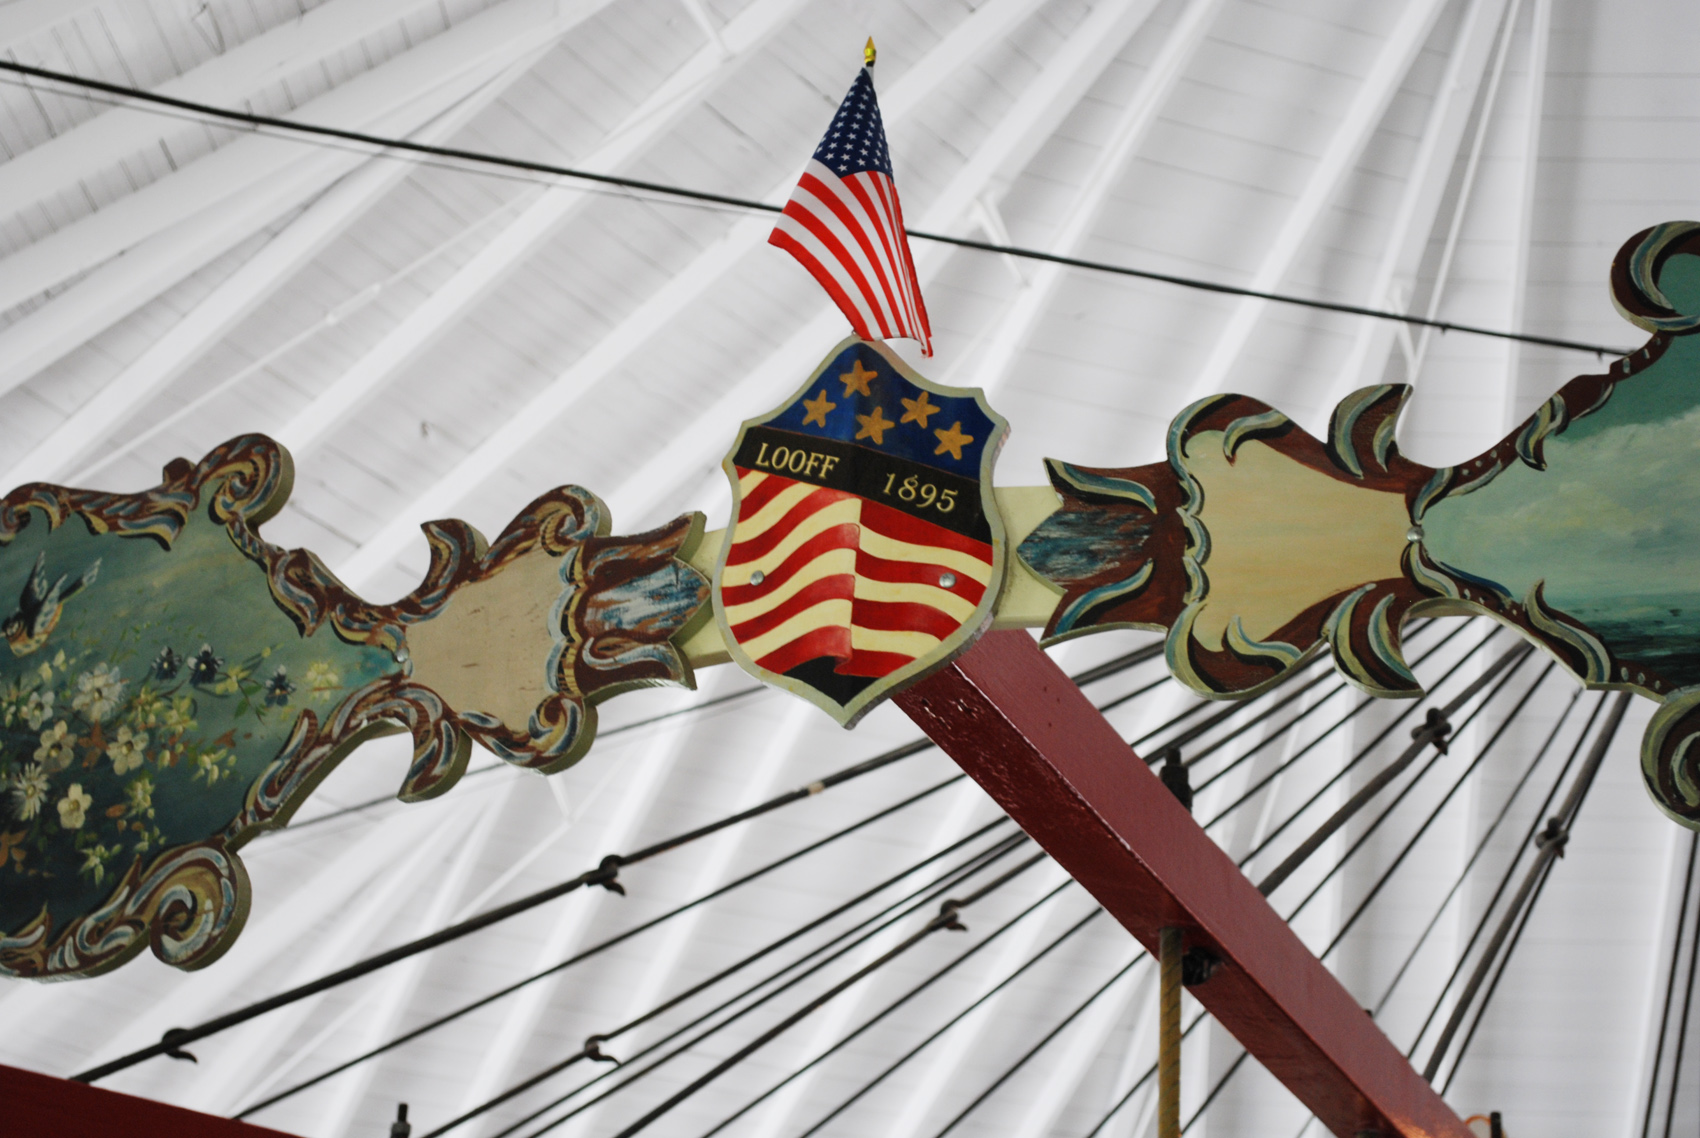 The-Looff-carousel-at-Slater-Park-Rhode-Island-102